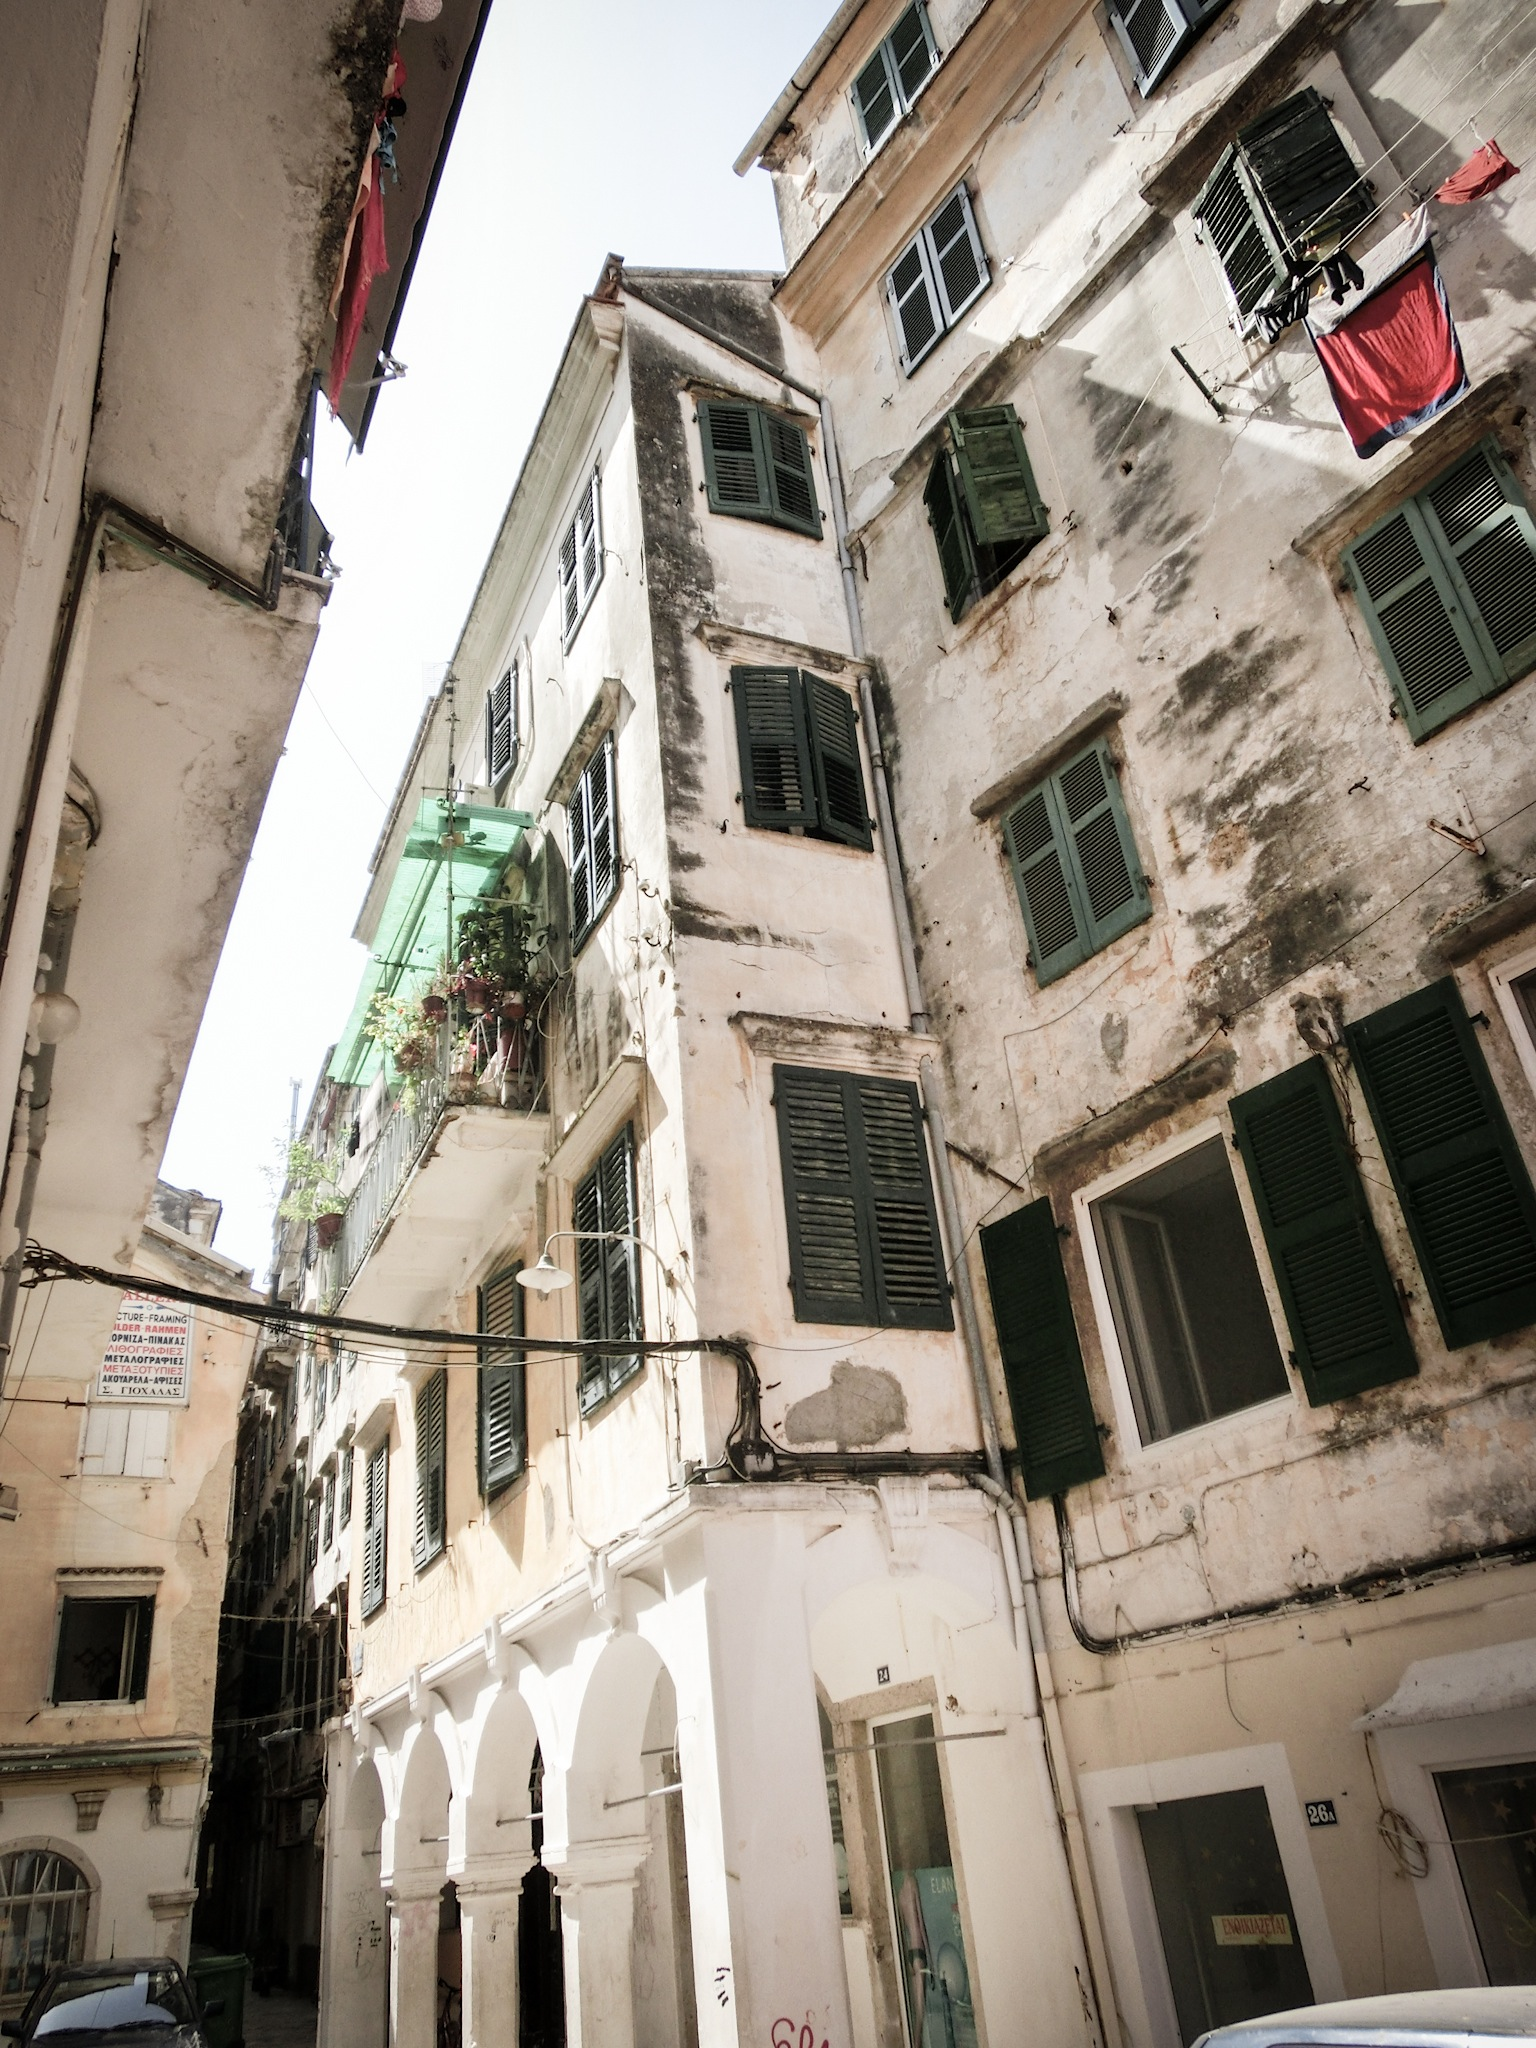 House Facades of Corfu